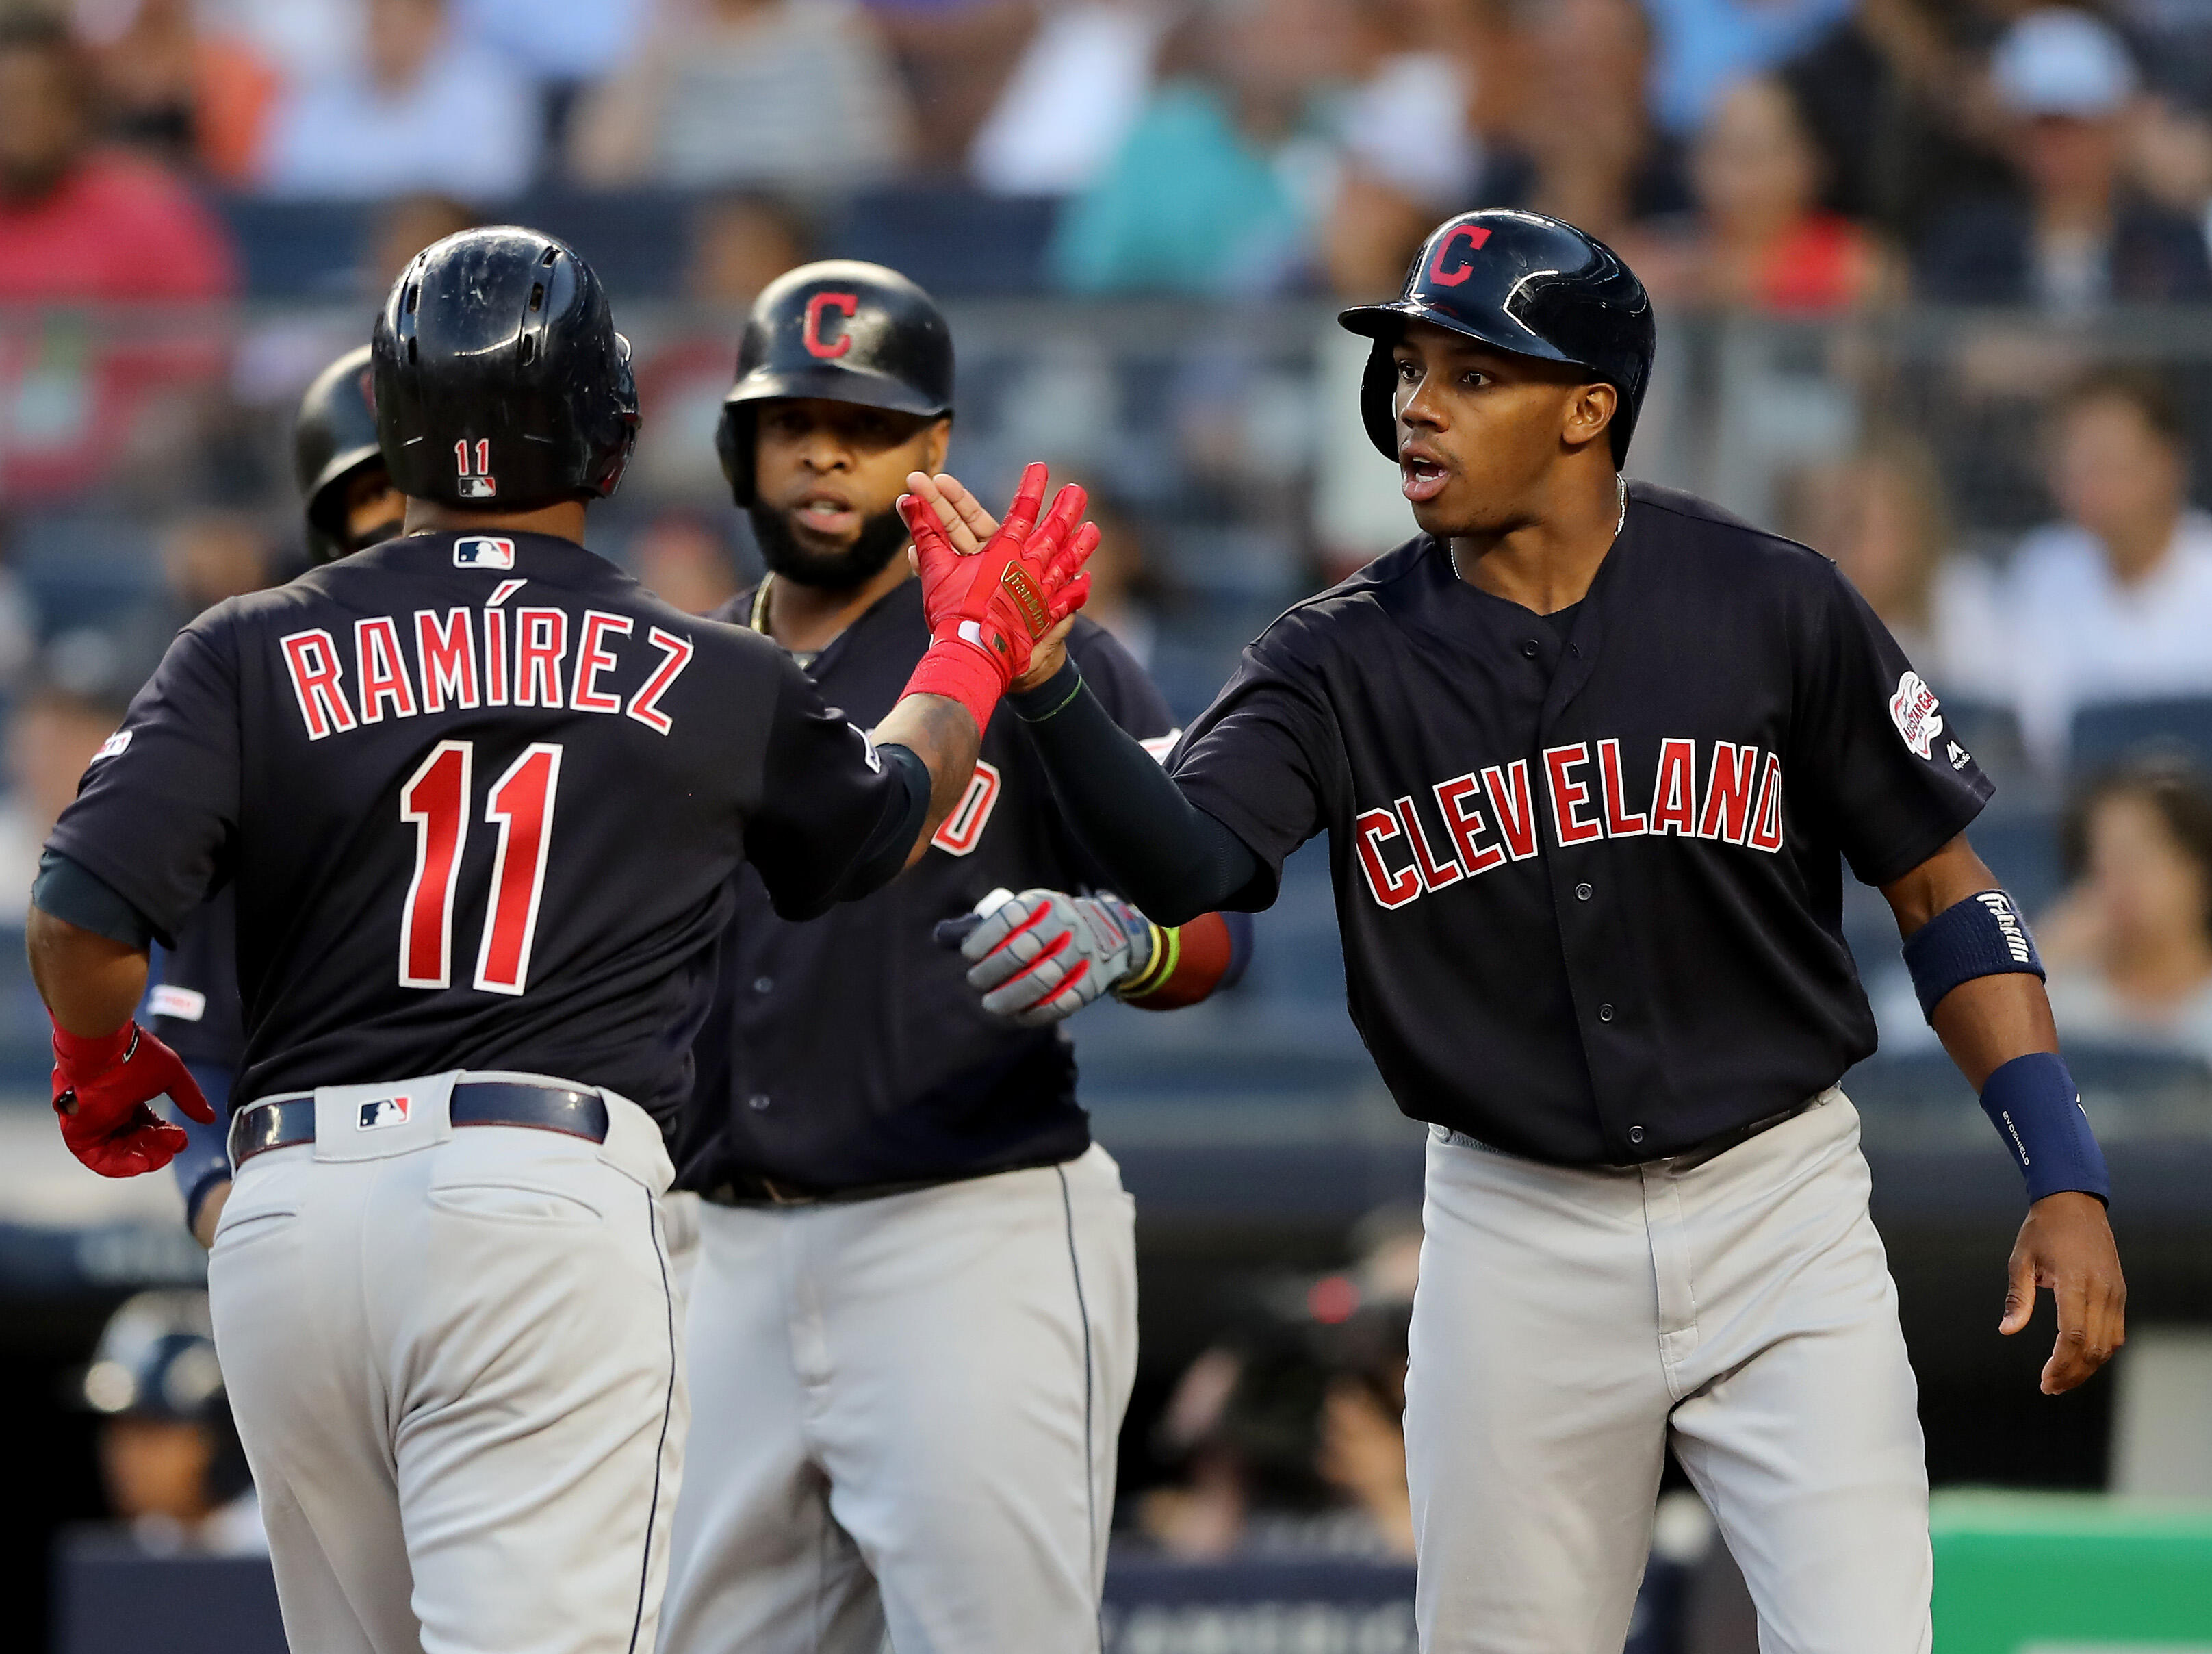 Tribe Score 19 in Win Against the Yankees, as The Fight for First Continues